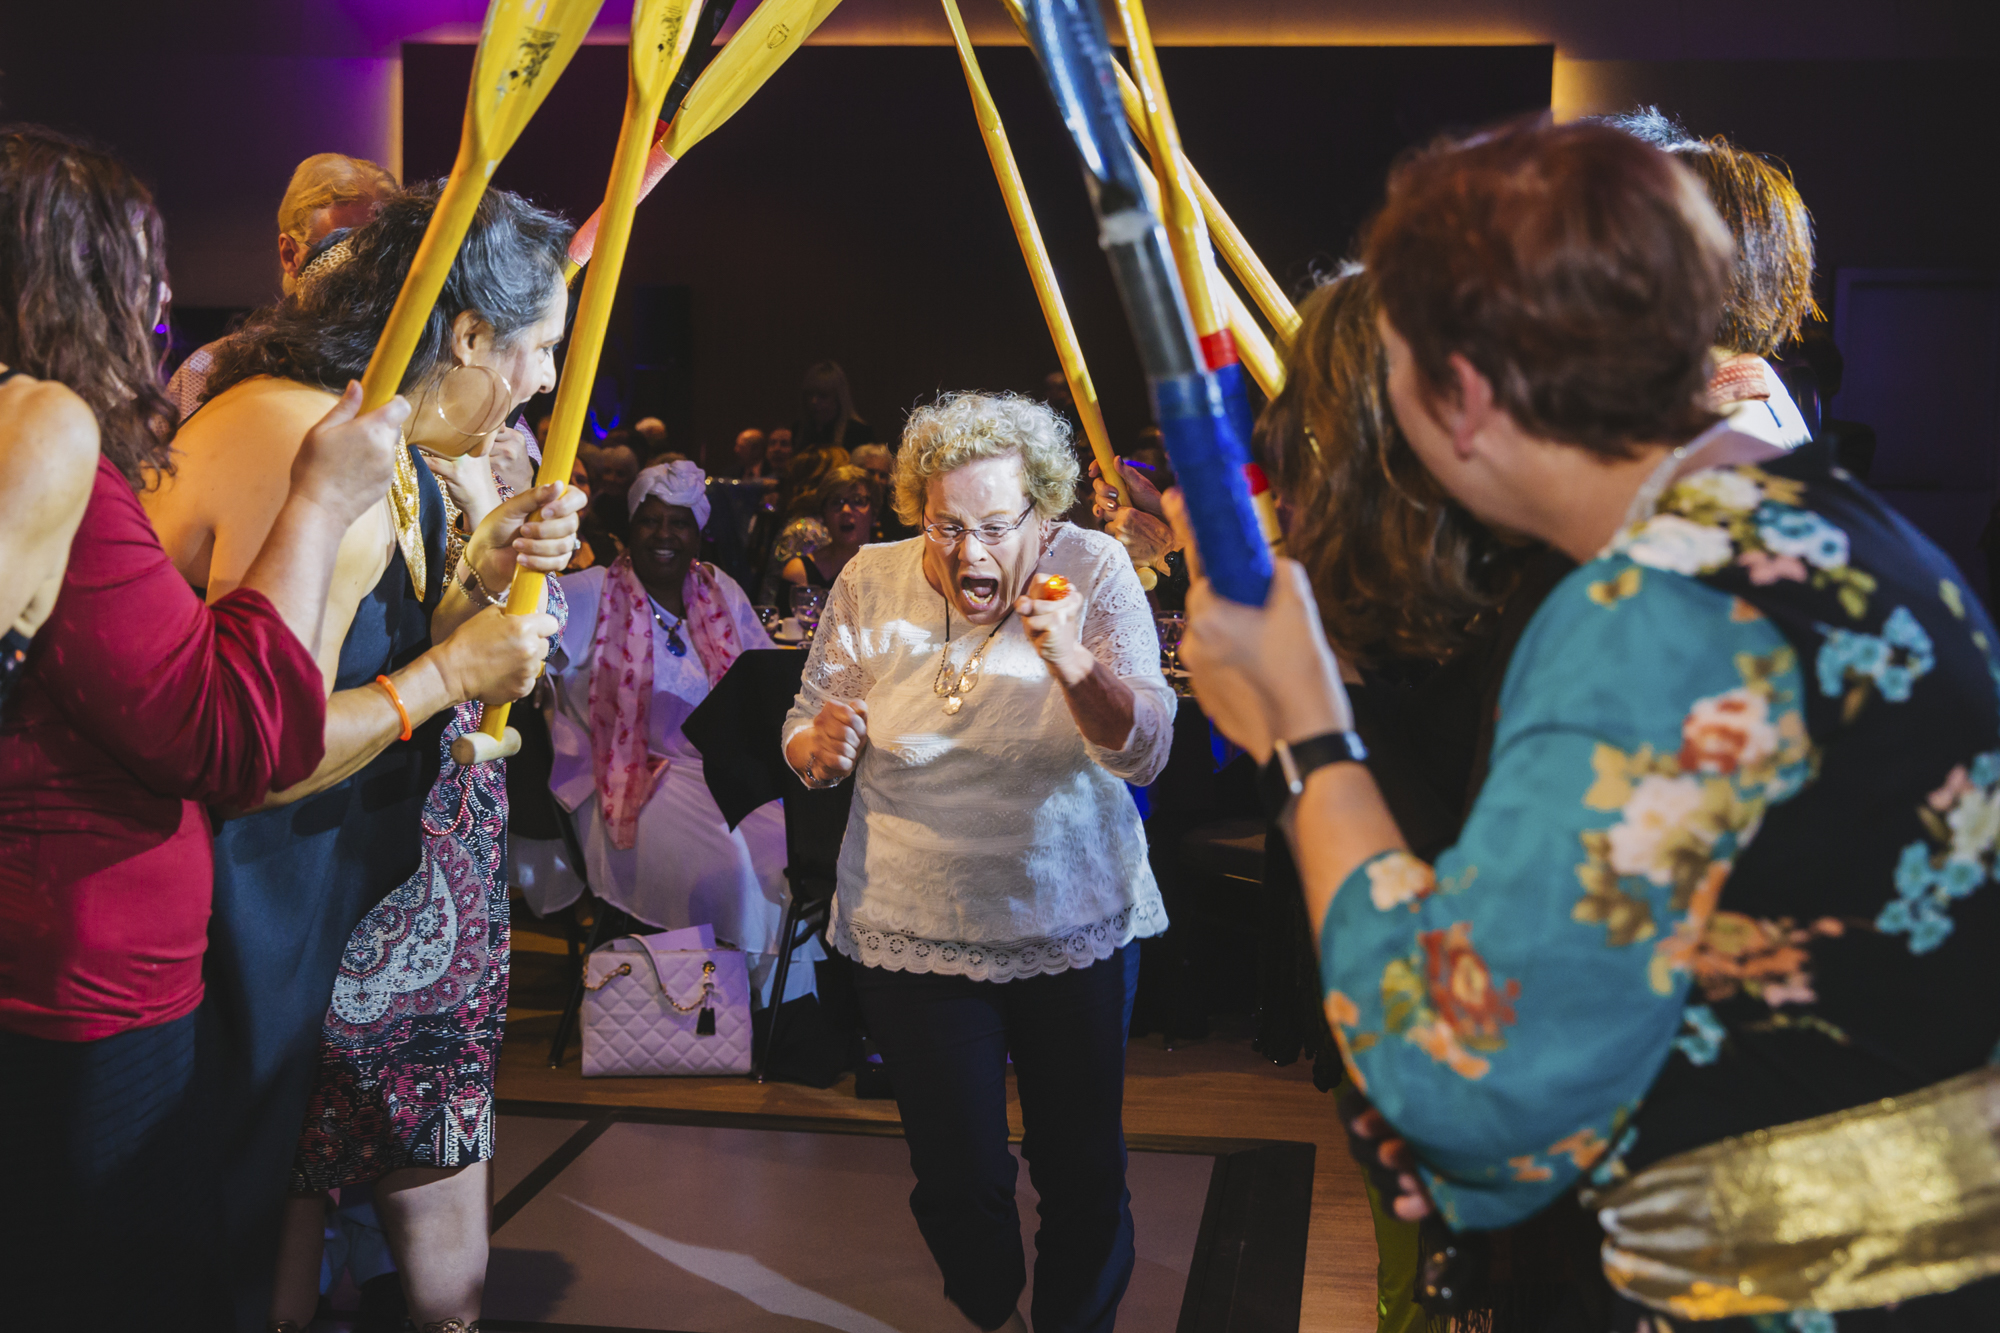 The Team Survivor NW 2018 Gala brought out dozens of female cancer survivors and their loved ones - in full disco attire - to boogie the night away at the annual benefit. The sold out event is in it's thirteenth year, and was held at the Meydenbauer Center in Bellevue, WA. (Image: Sunita Martini)